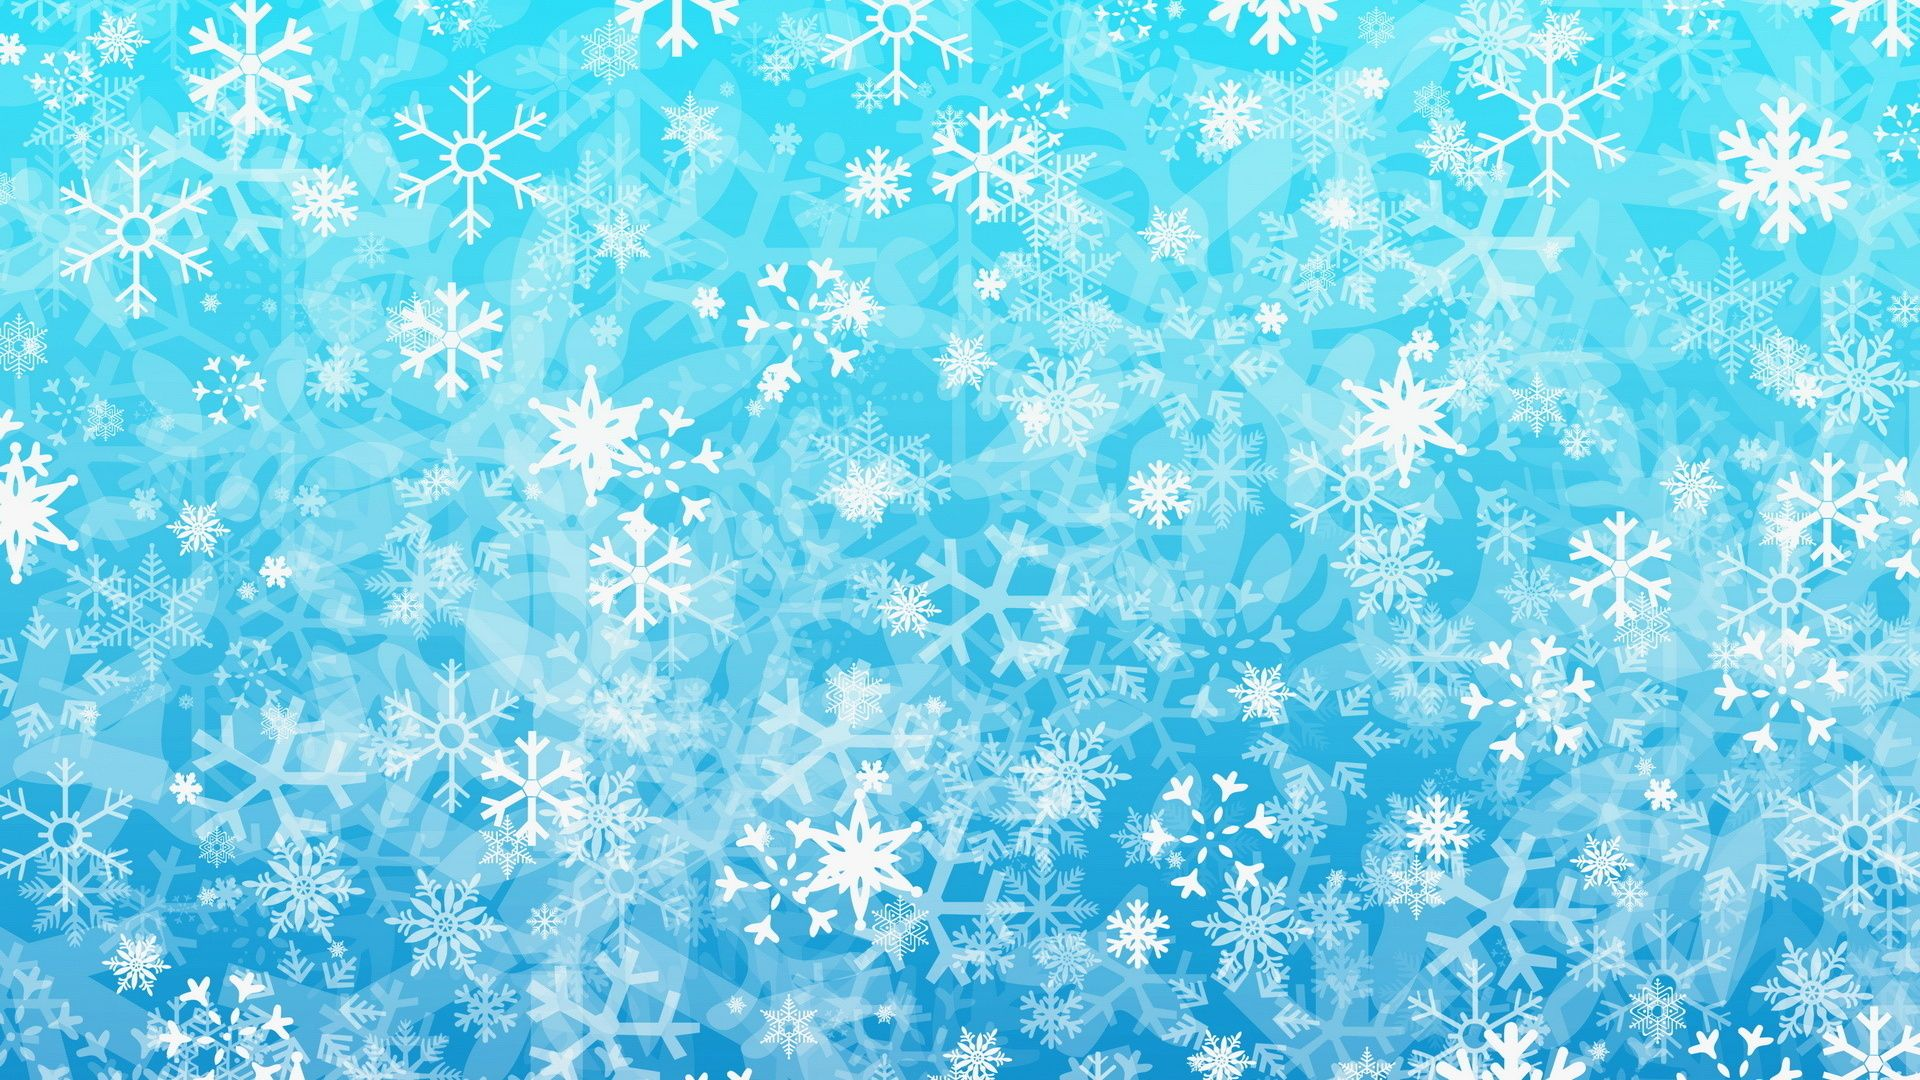 New Year With Snowflakes beautiful wallpaper